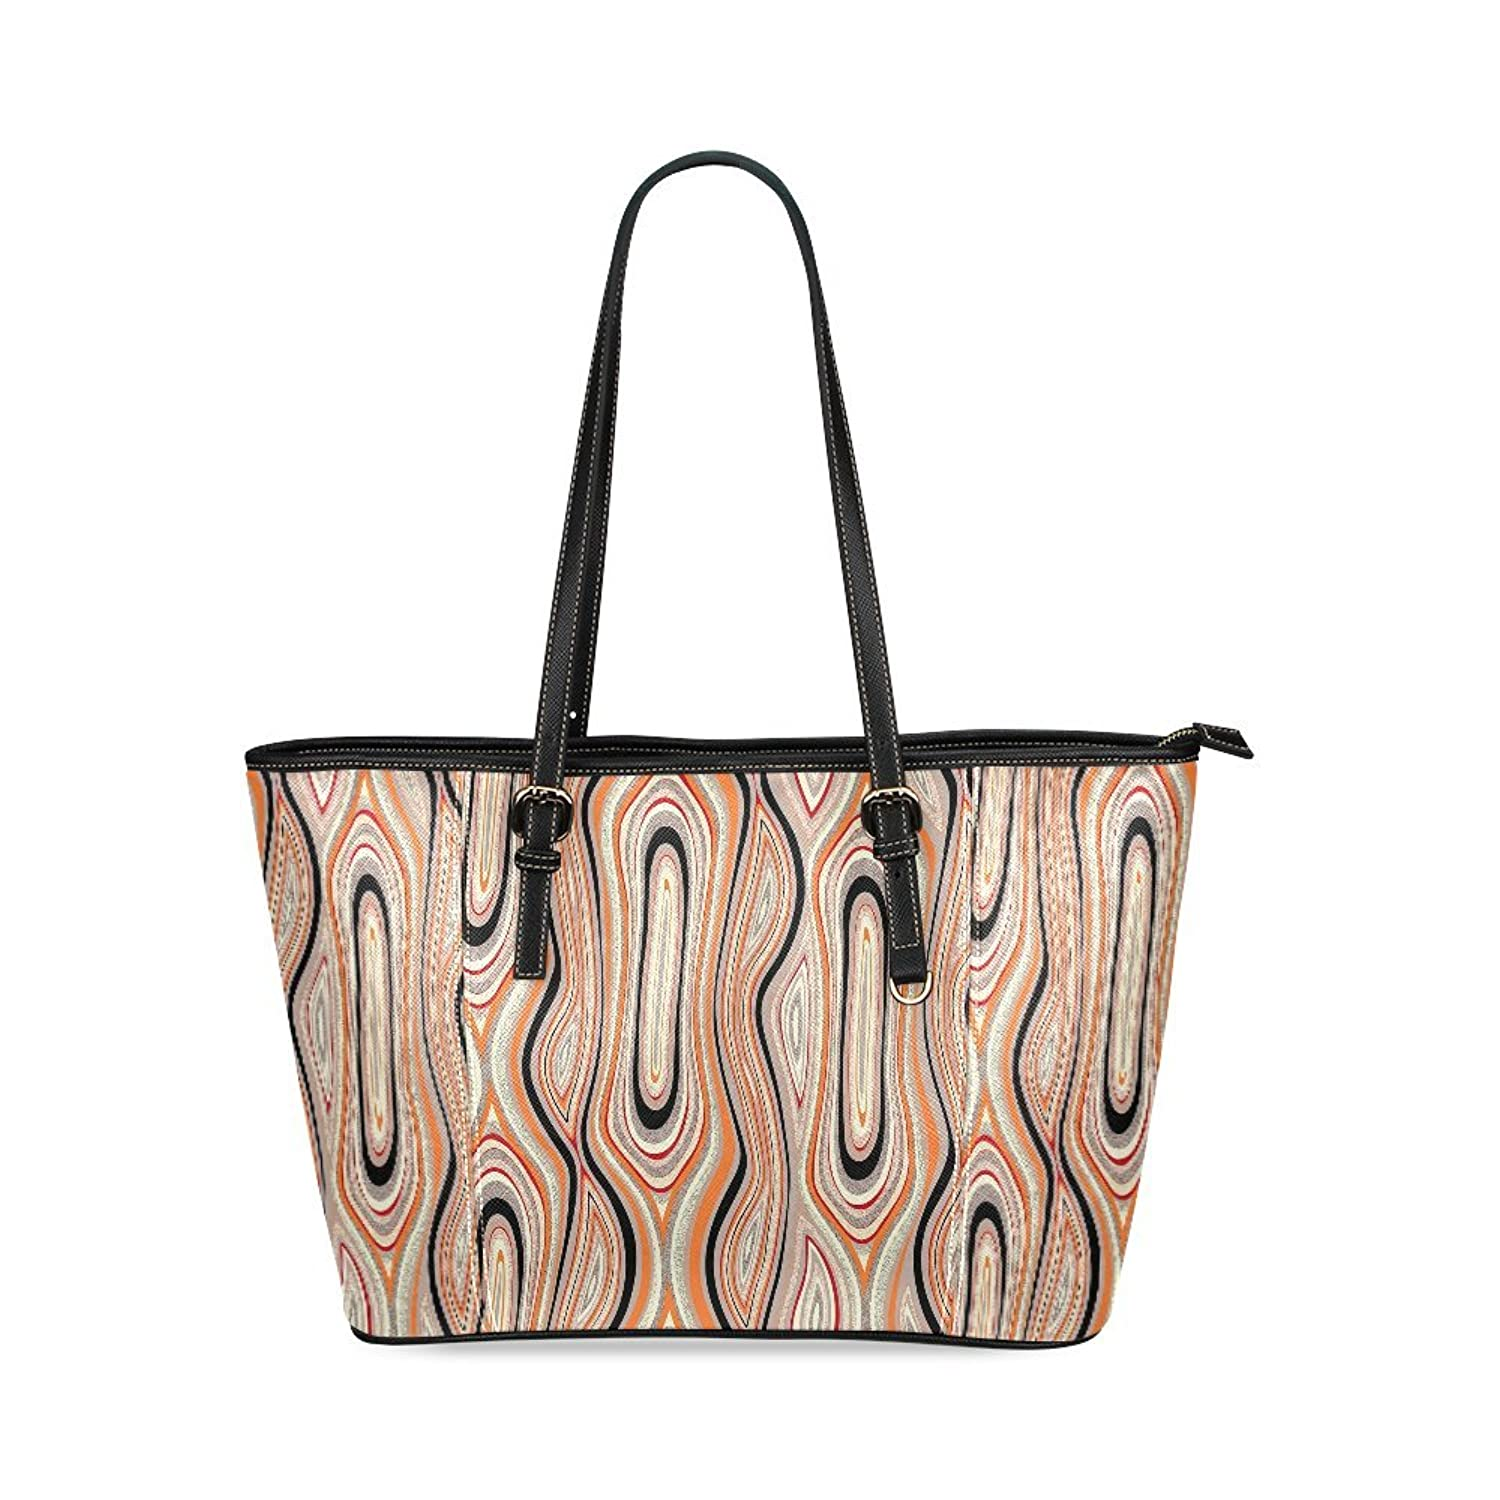 Abstract Swirl Geometric Custom PU Leather Large Tote Bag/Handbag/Shoulder Bag for Fashion Women /Girls